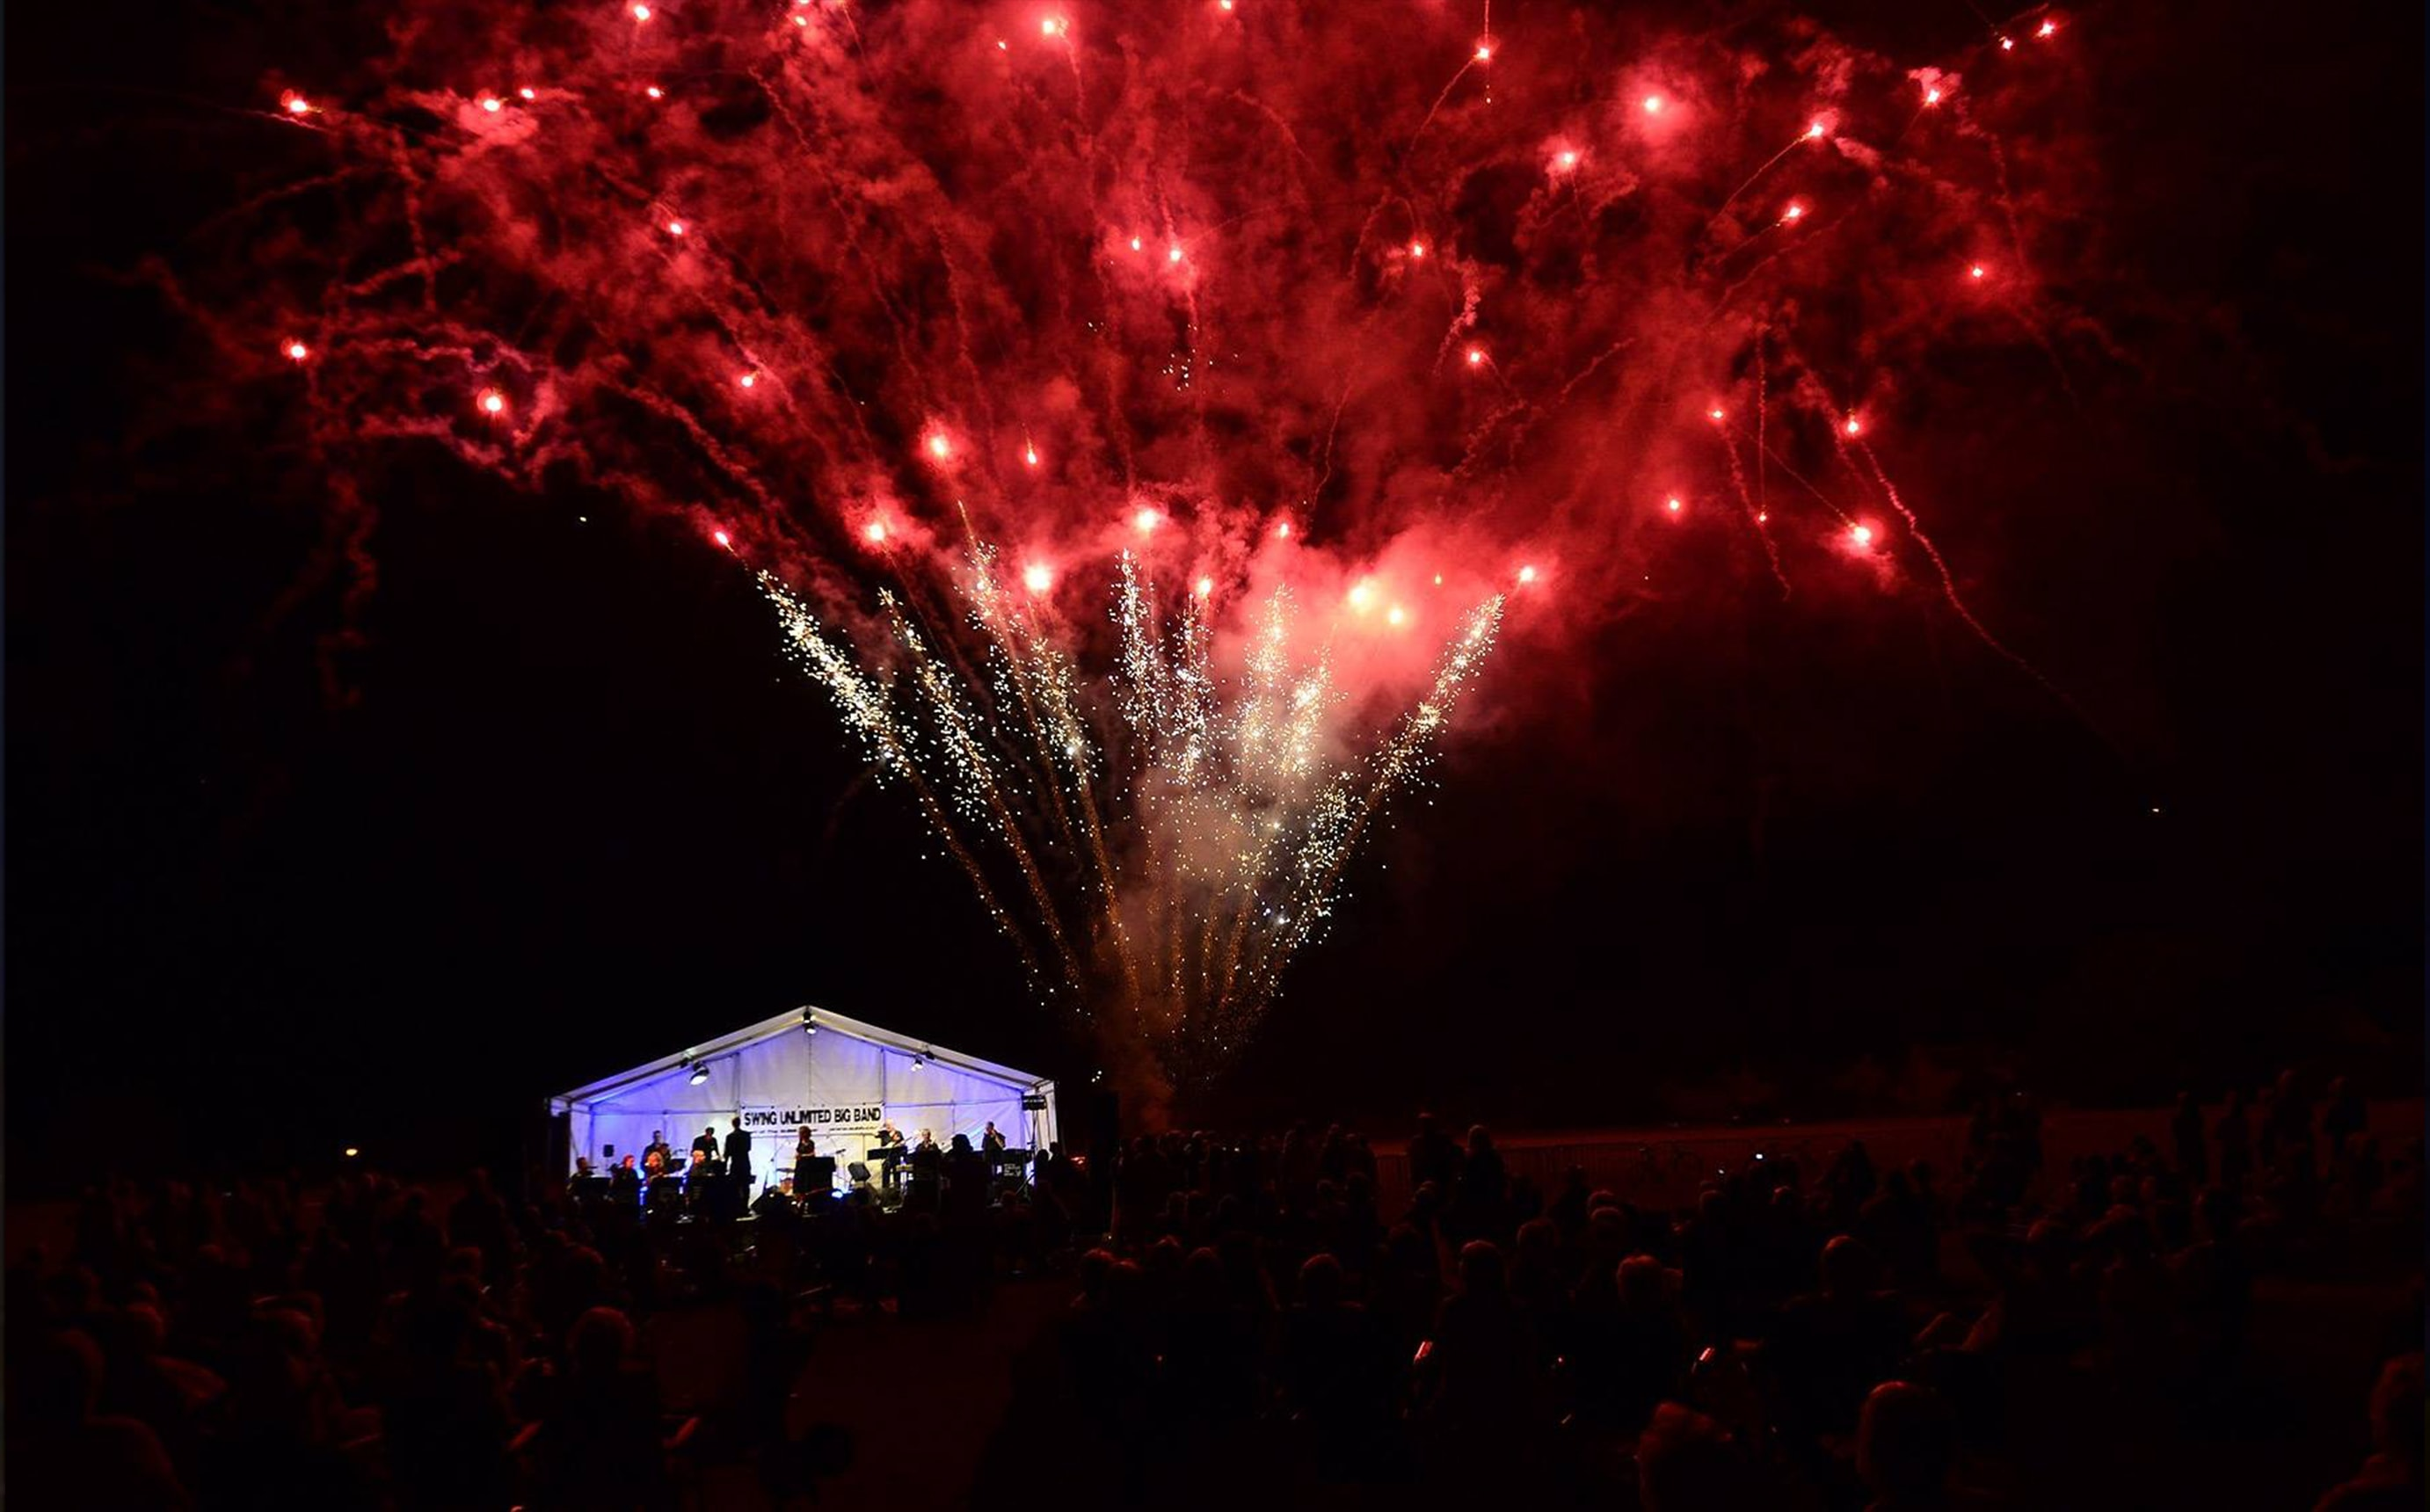 A Firework Solutions Limited display, a large scale wedding display with bright red fireworks